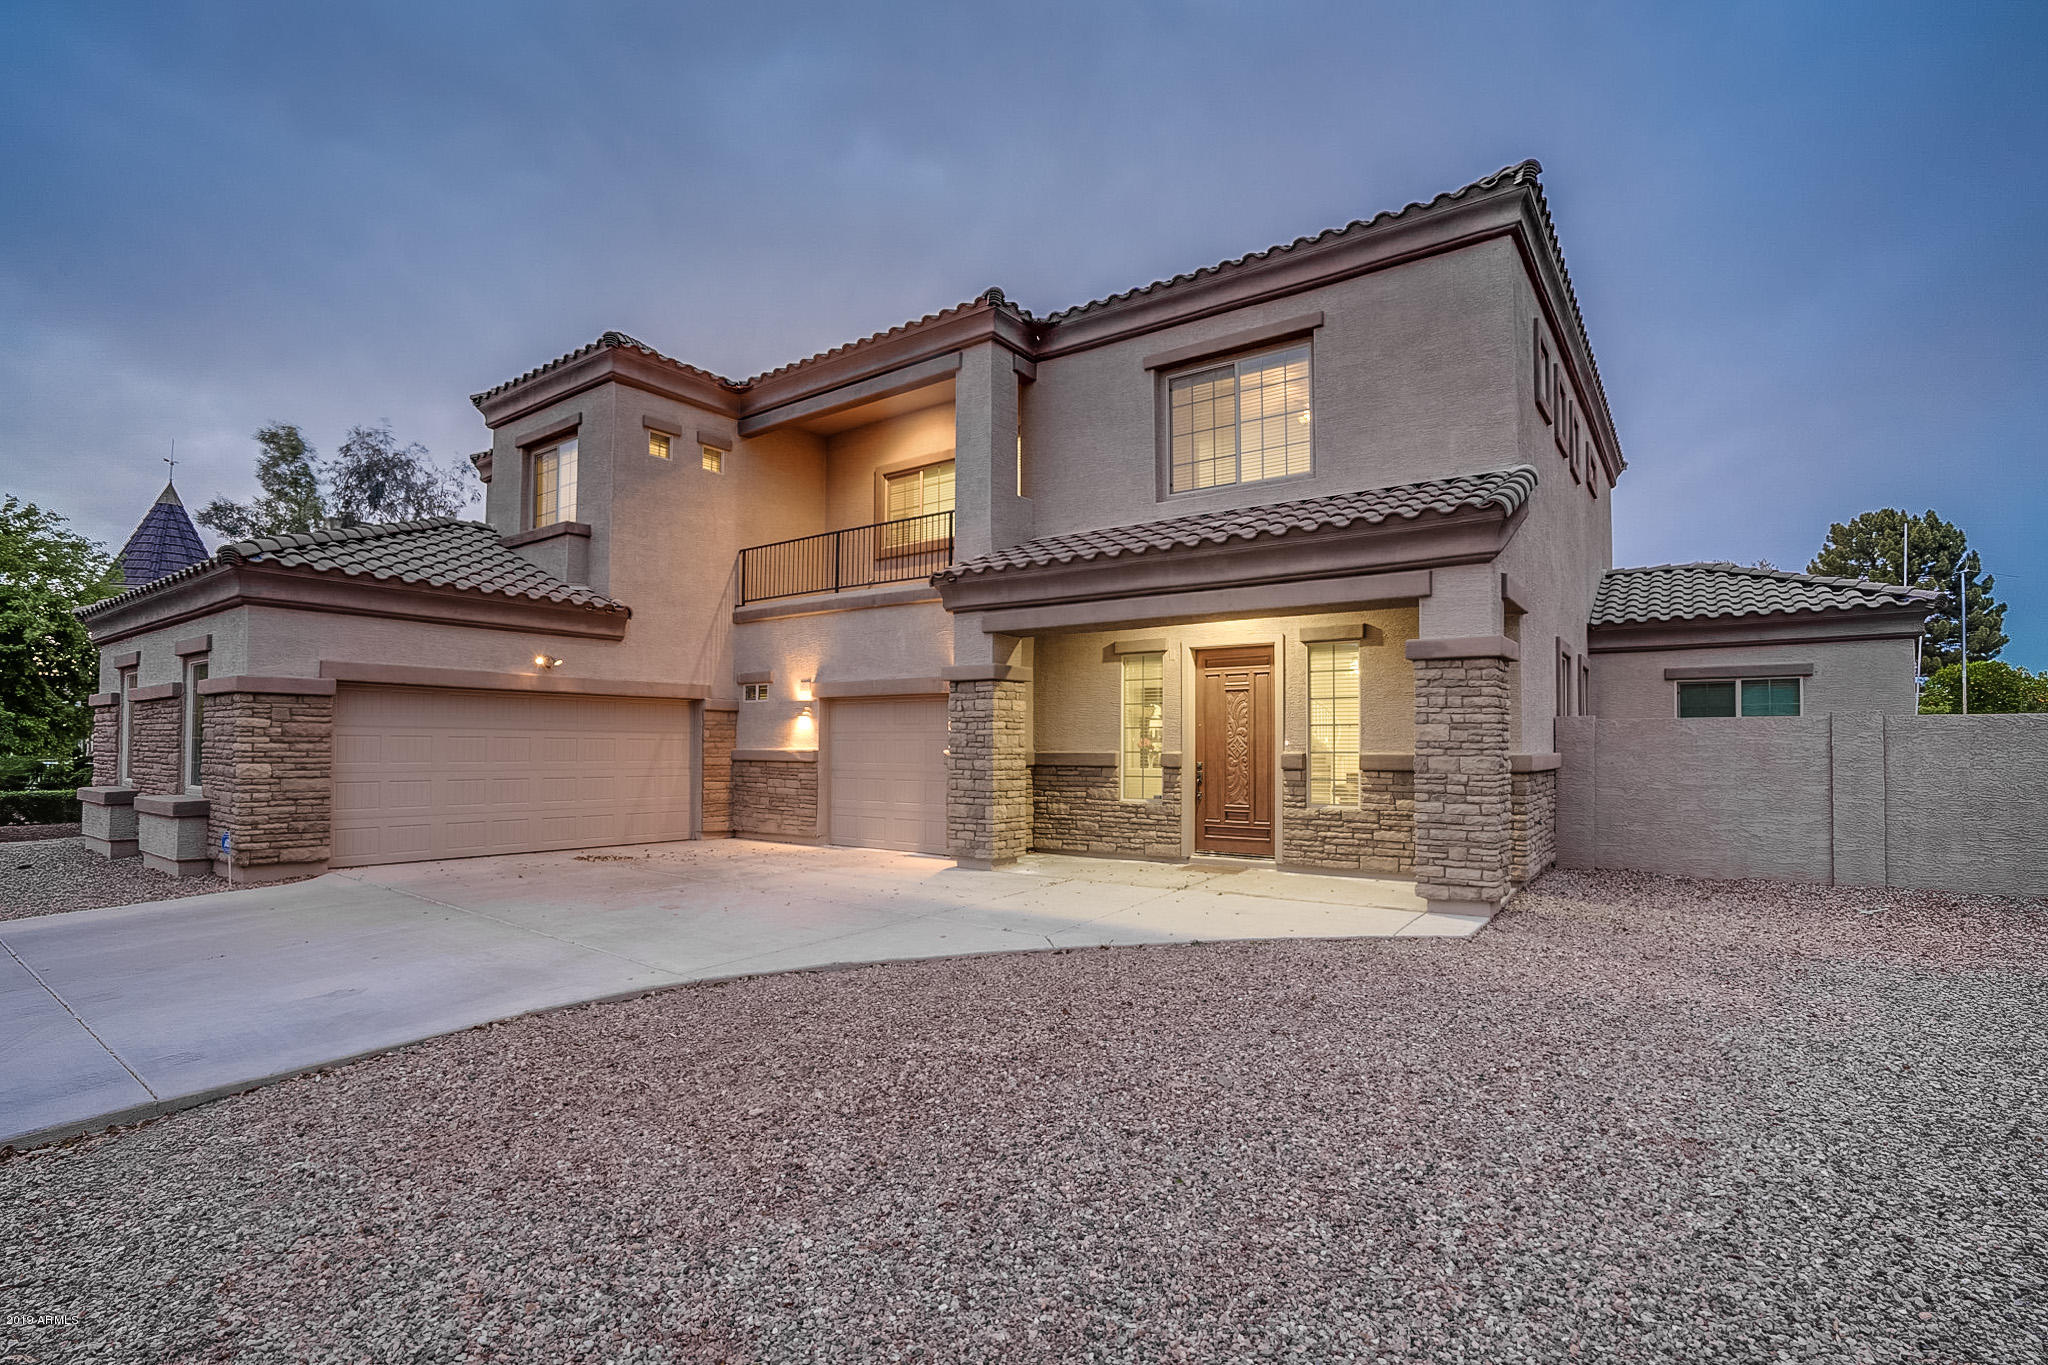 Photo of 702 E CARVER Road, Tempe, AZ 85284